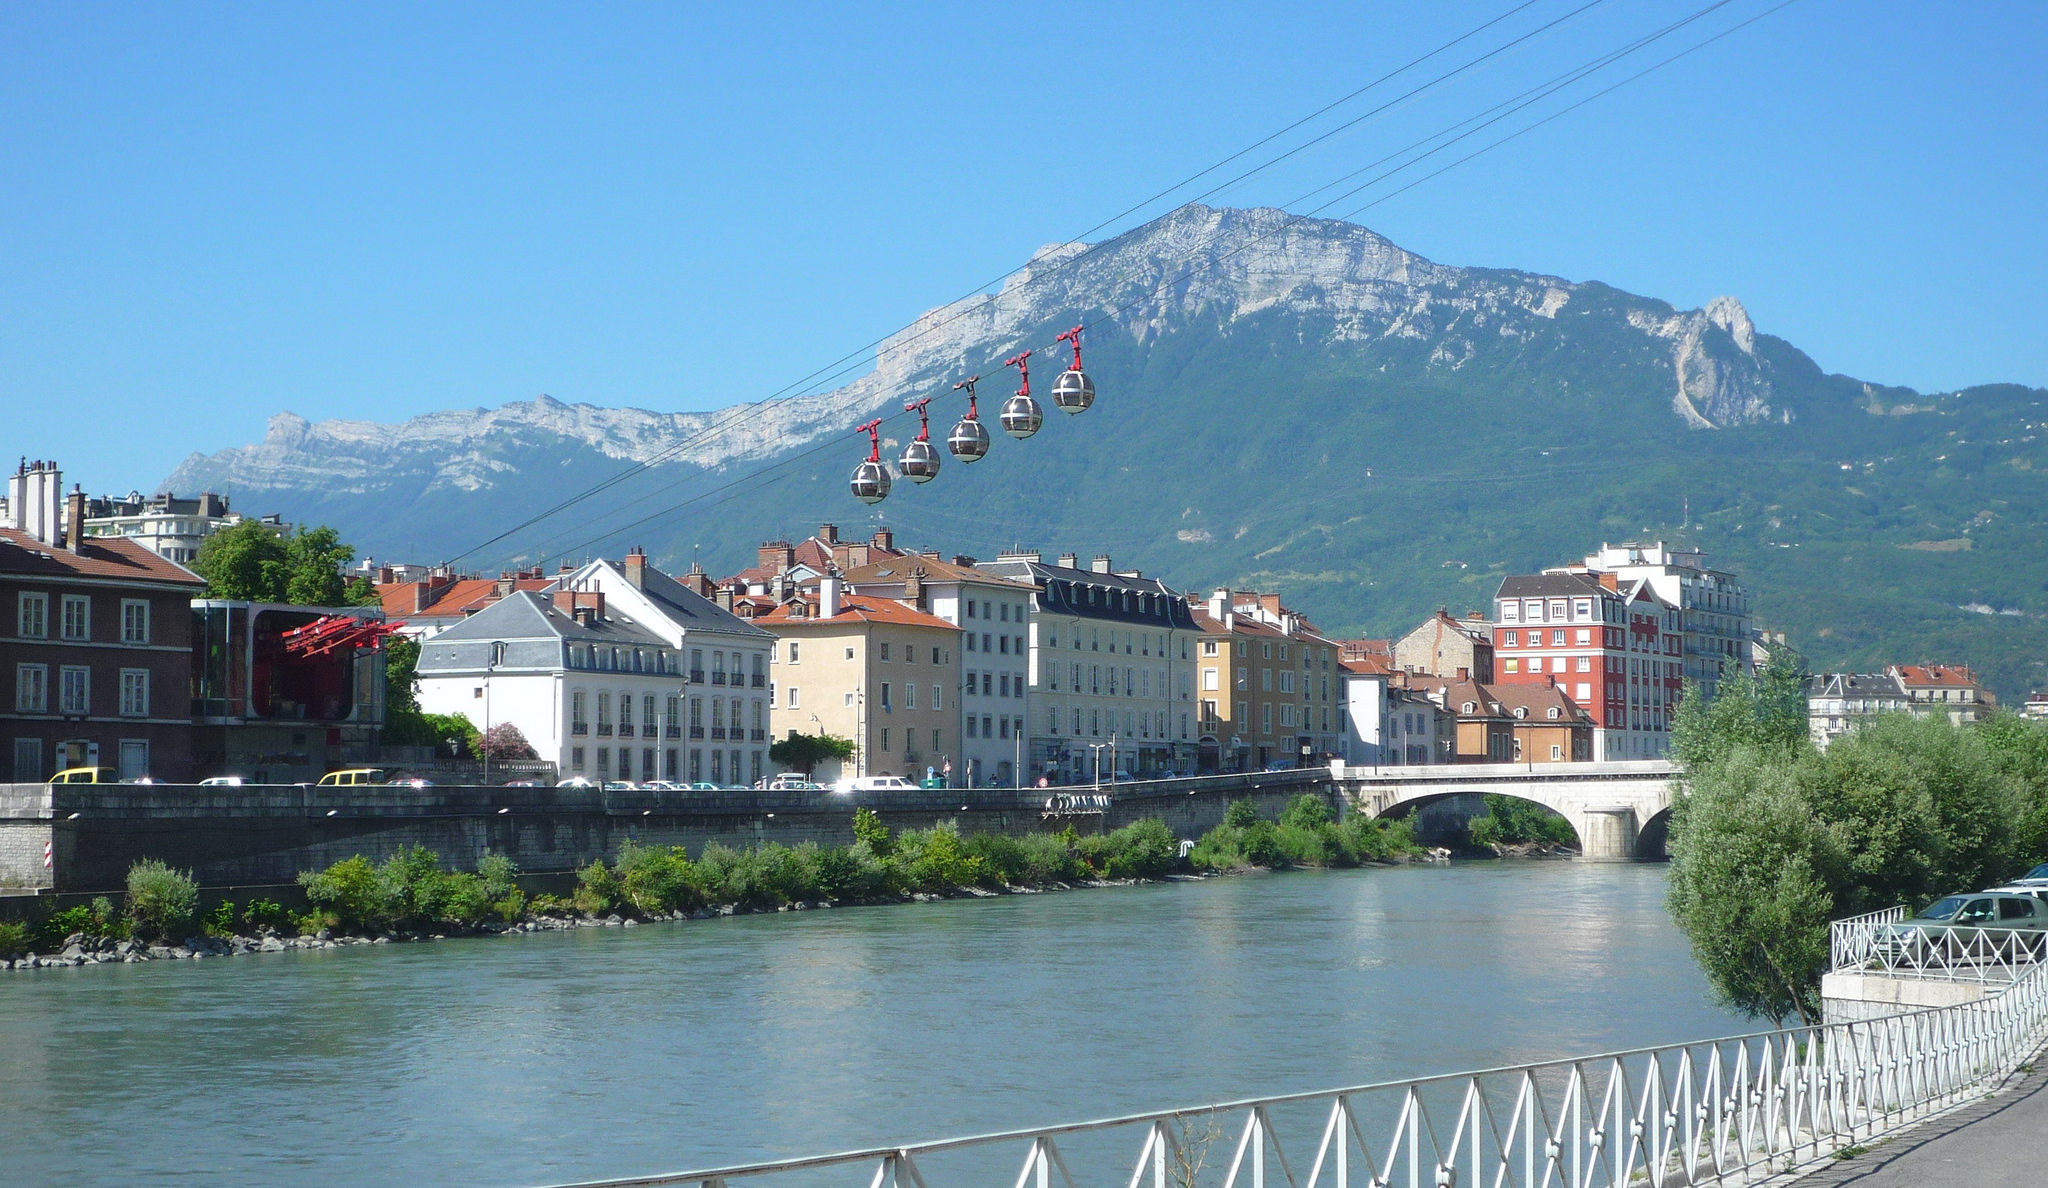 Grenoble-Bastille cable car - Cable Car in Grenoble - Thousand Wonders